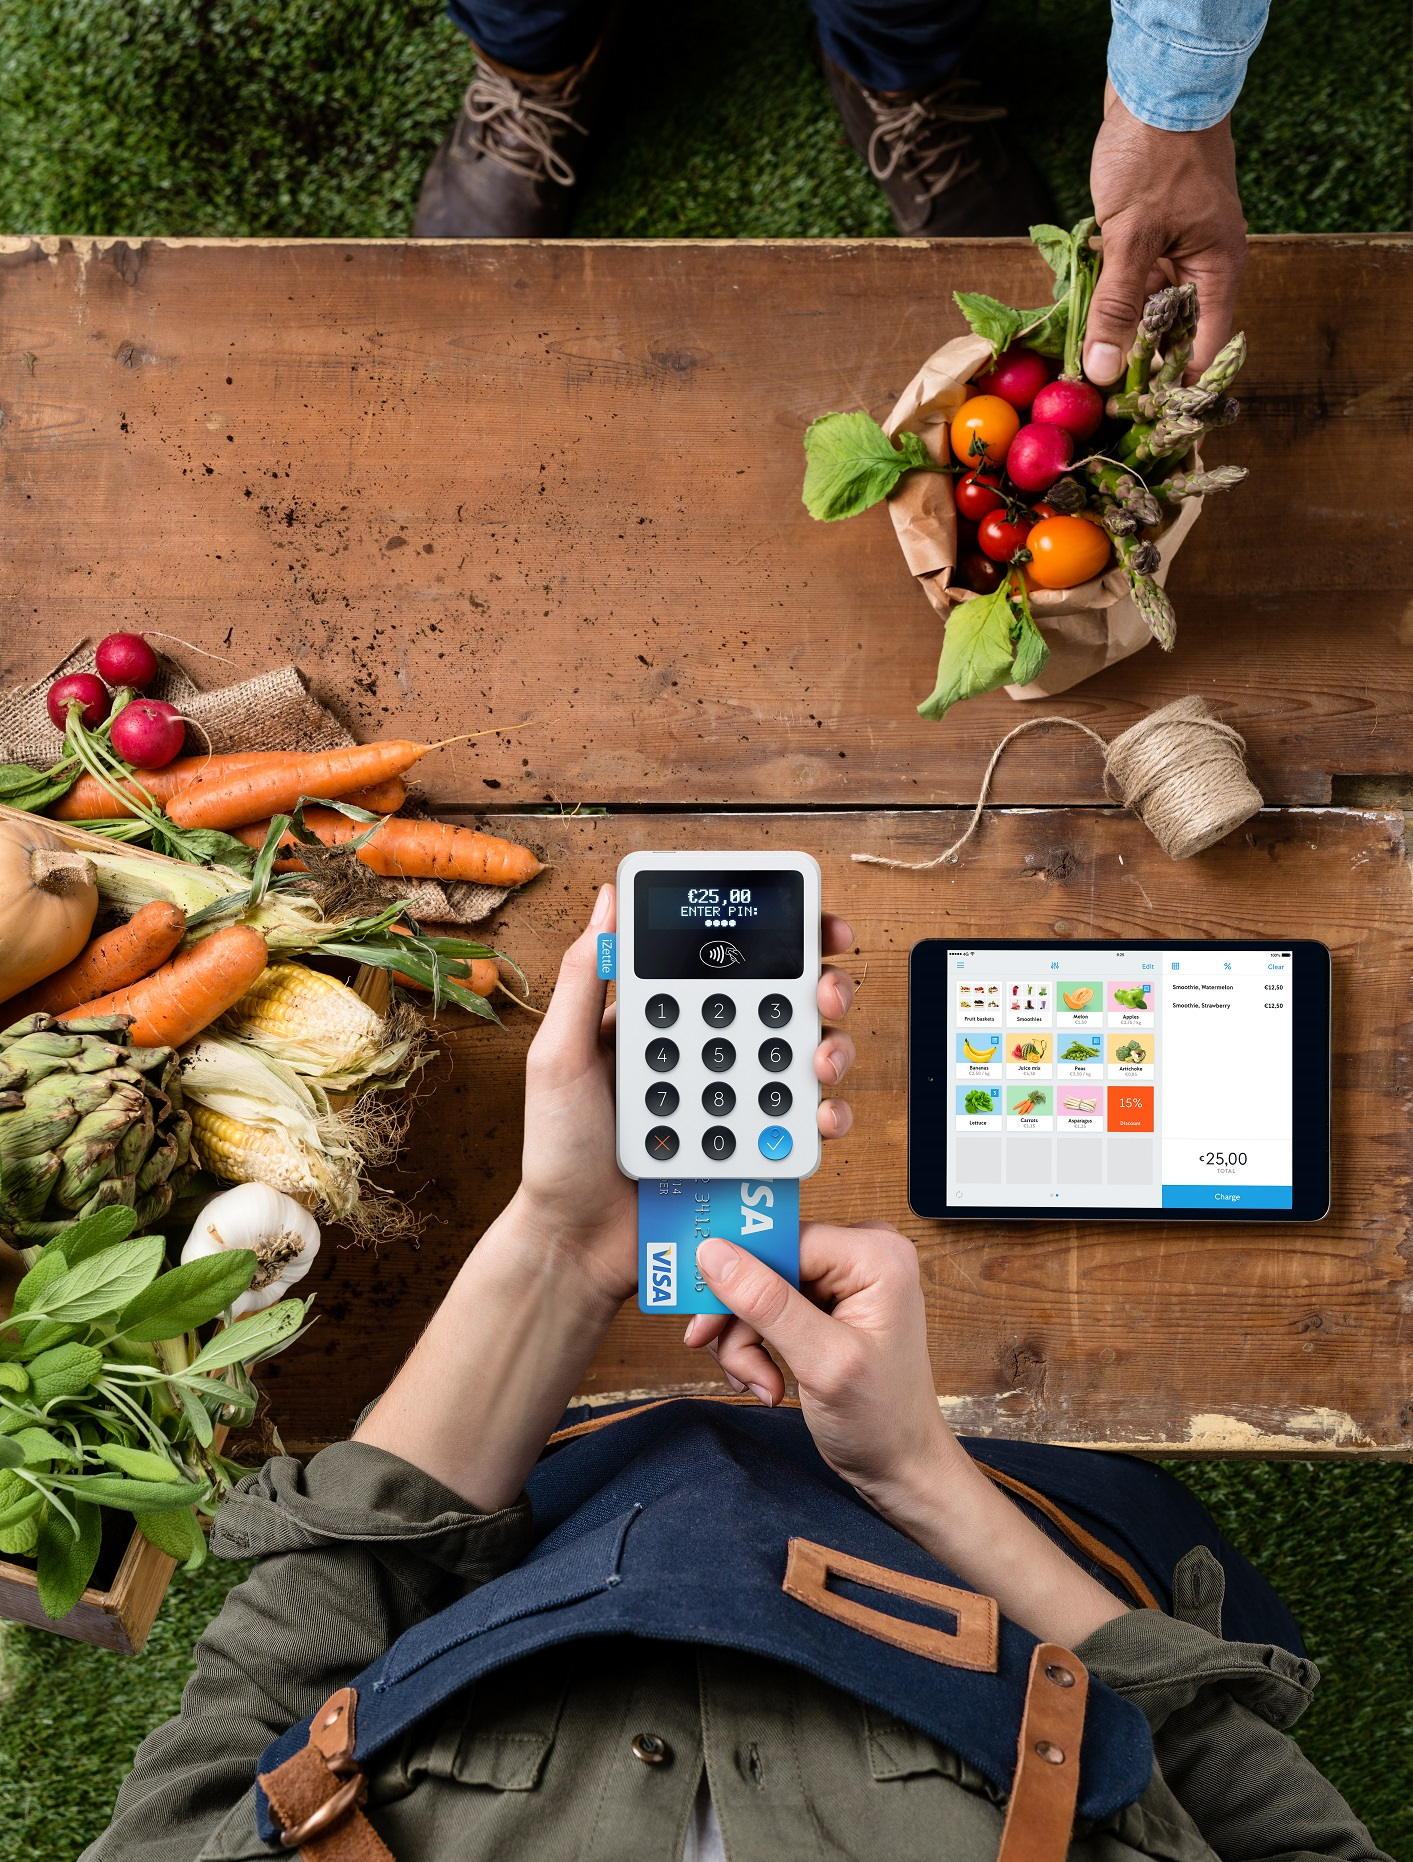 iZettle Secures €60m, Hires a CFO